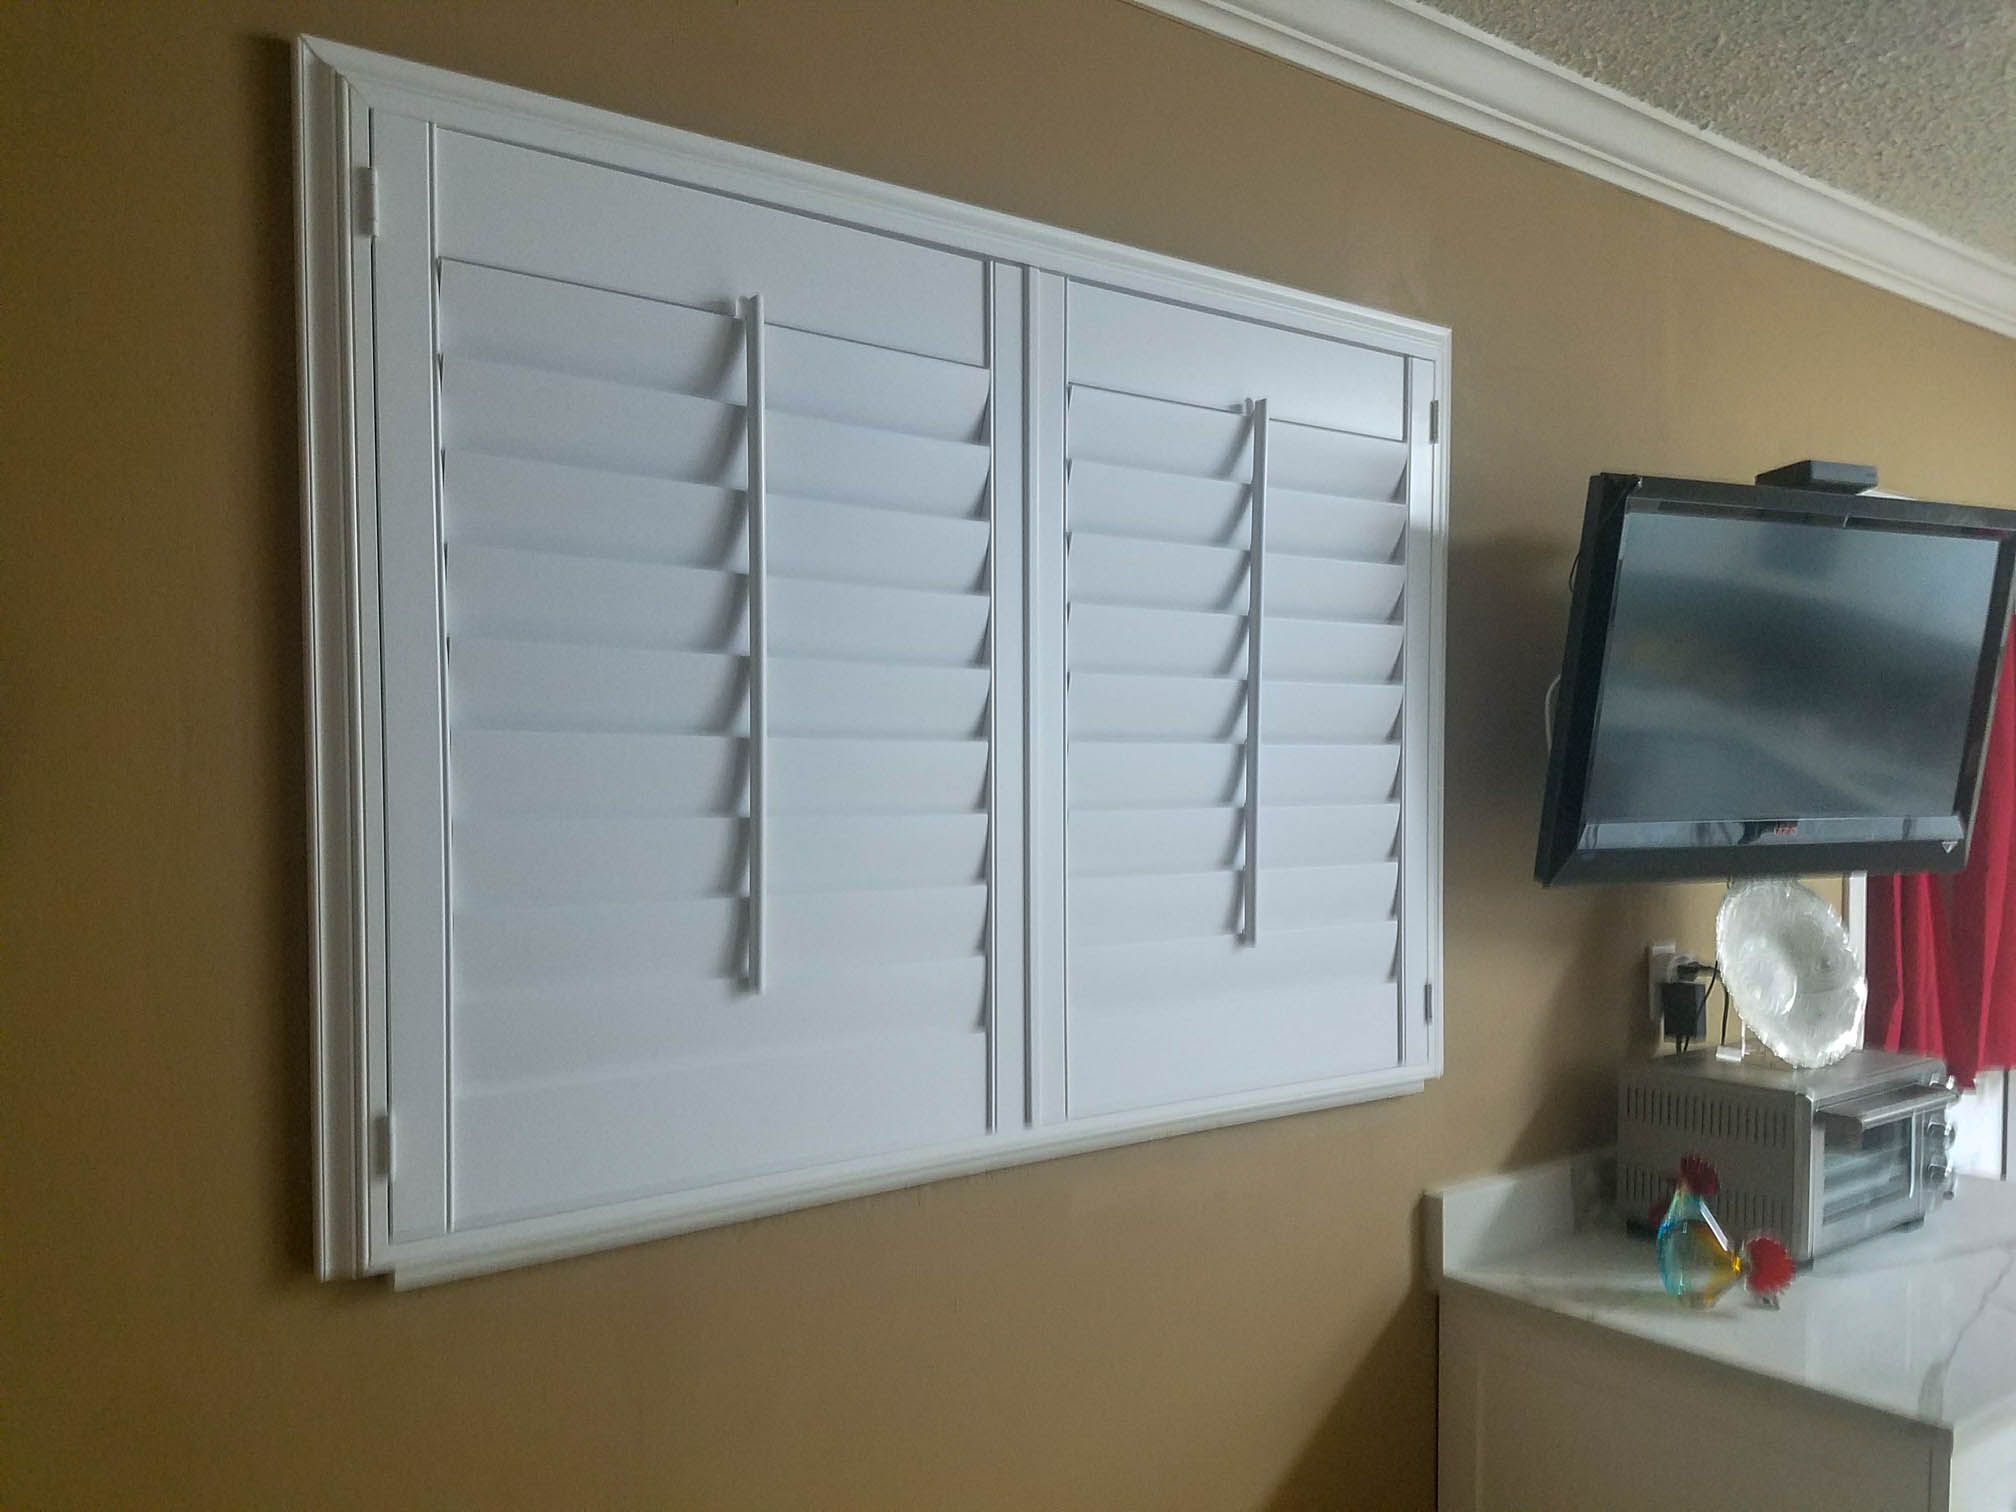 plantation shutters gallery PLANTATION SHUTTERS GALLERY 20171221 175240